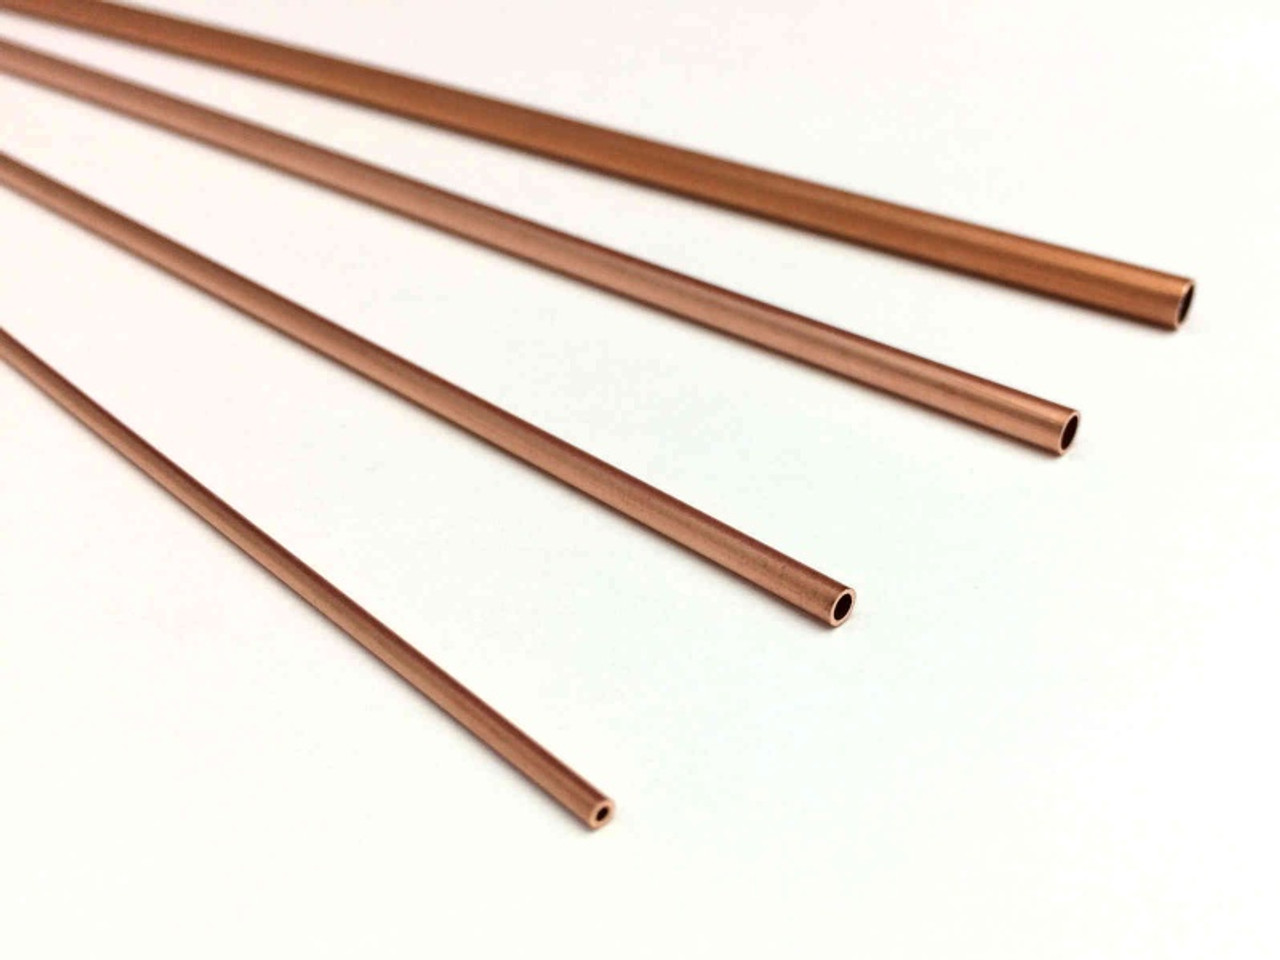 Round Copper Tube 3-32 Inch OD